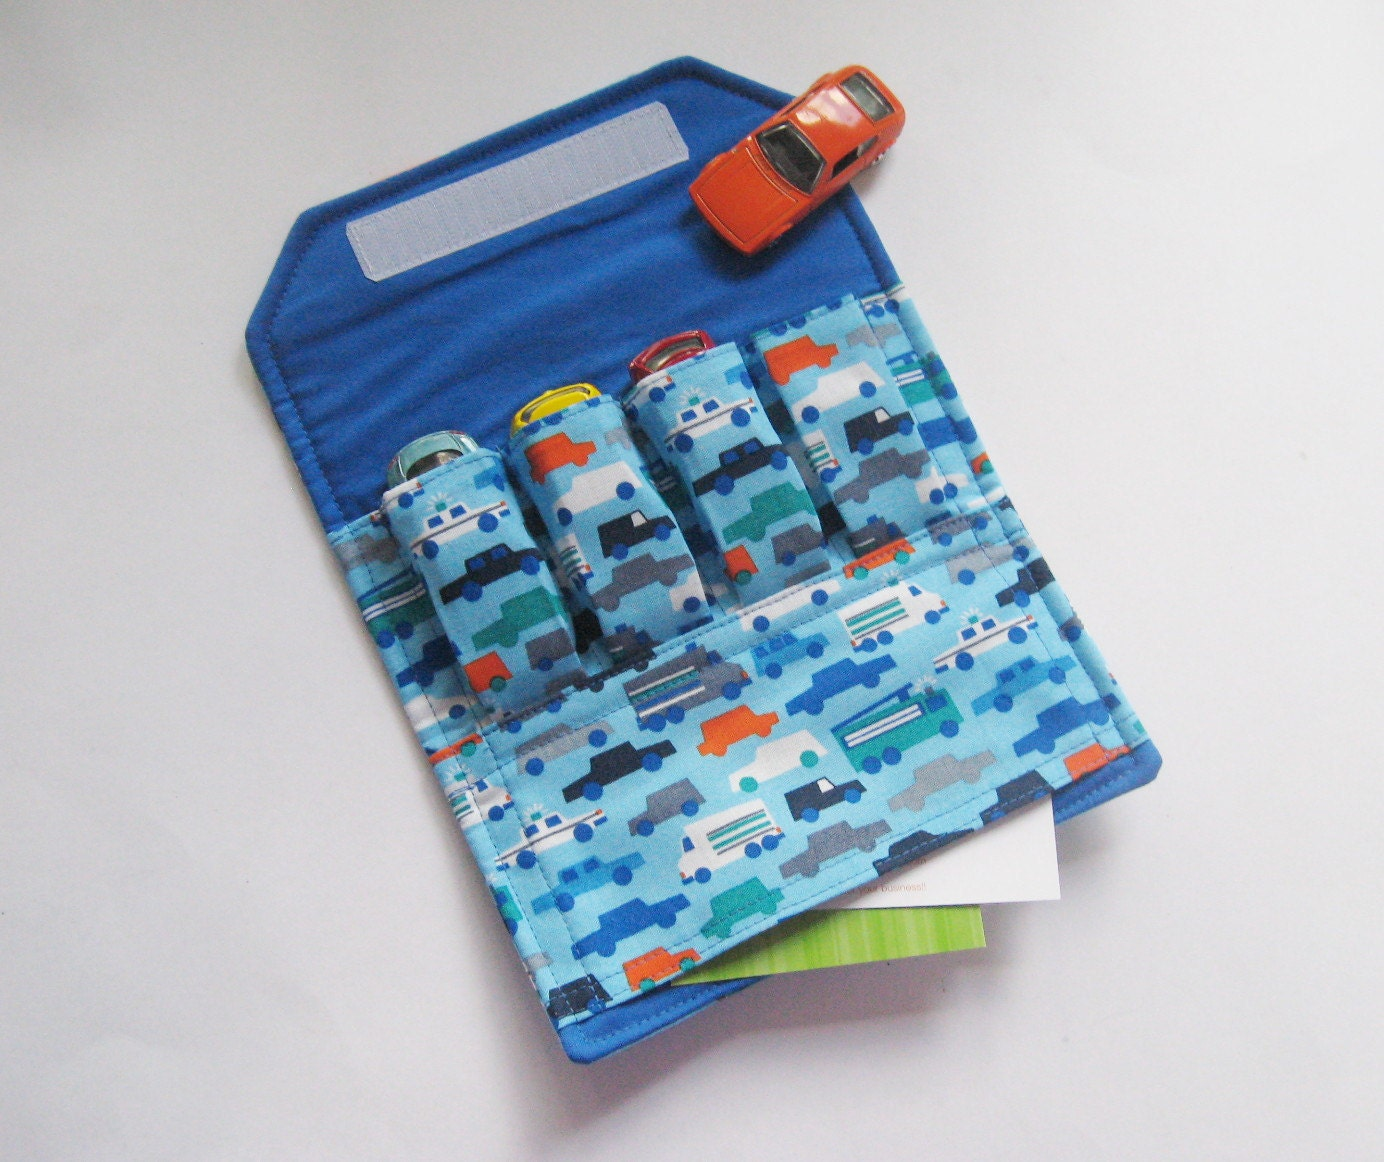 Sew A Toy Car Holder : Kids toy car holder the original wallet by